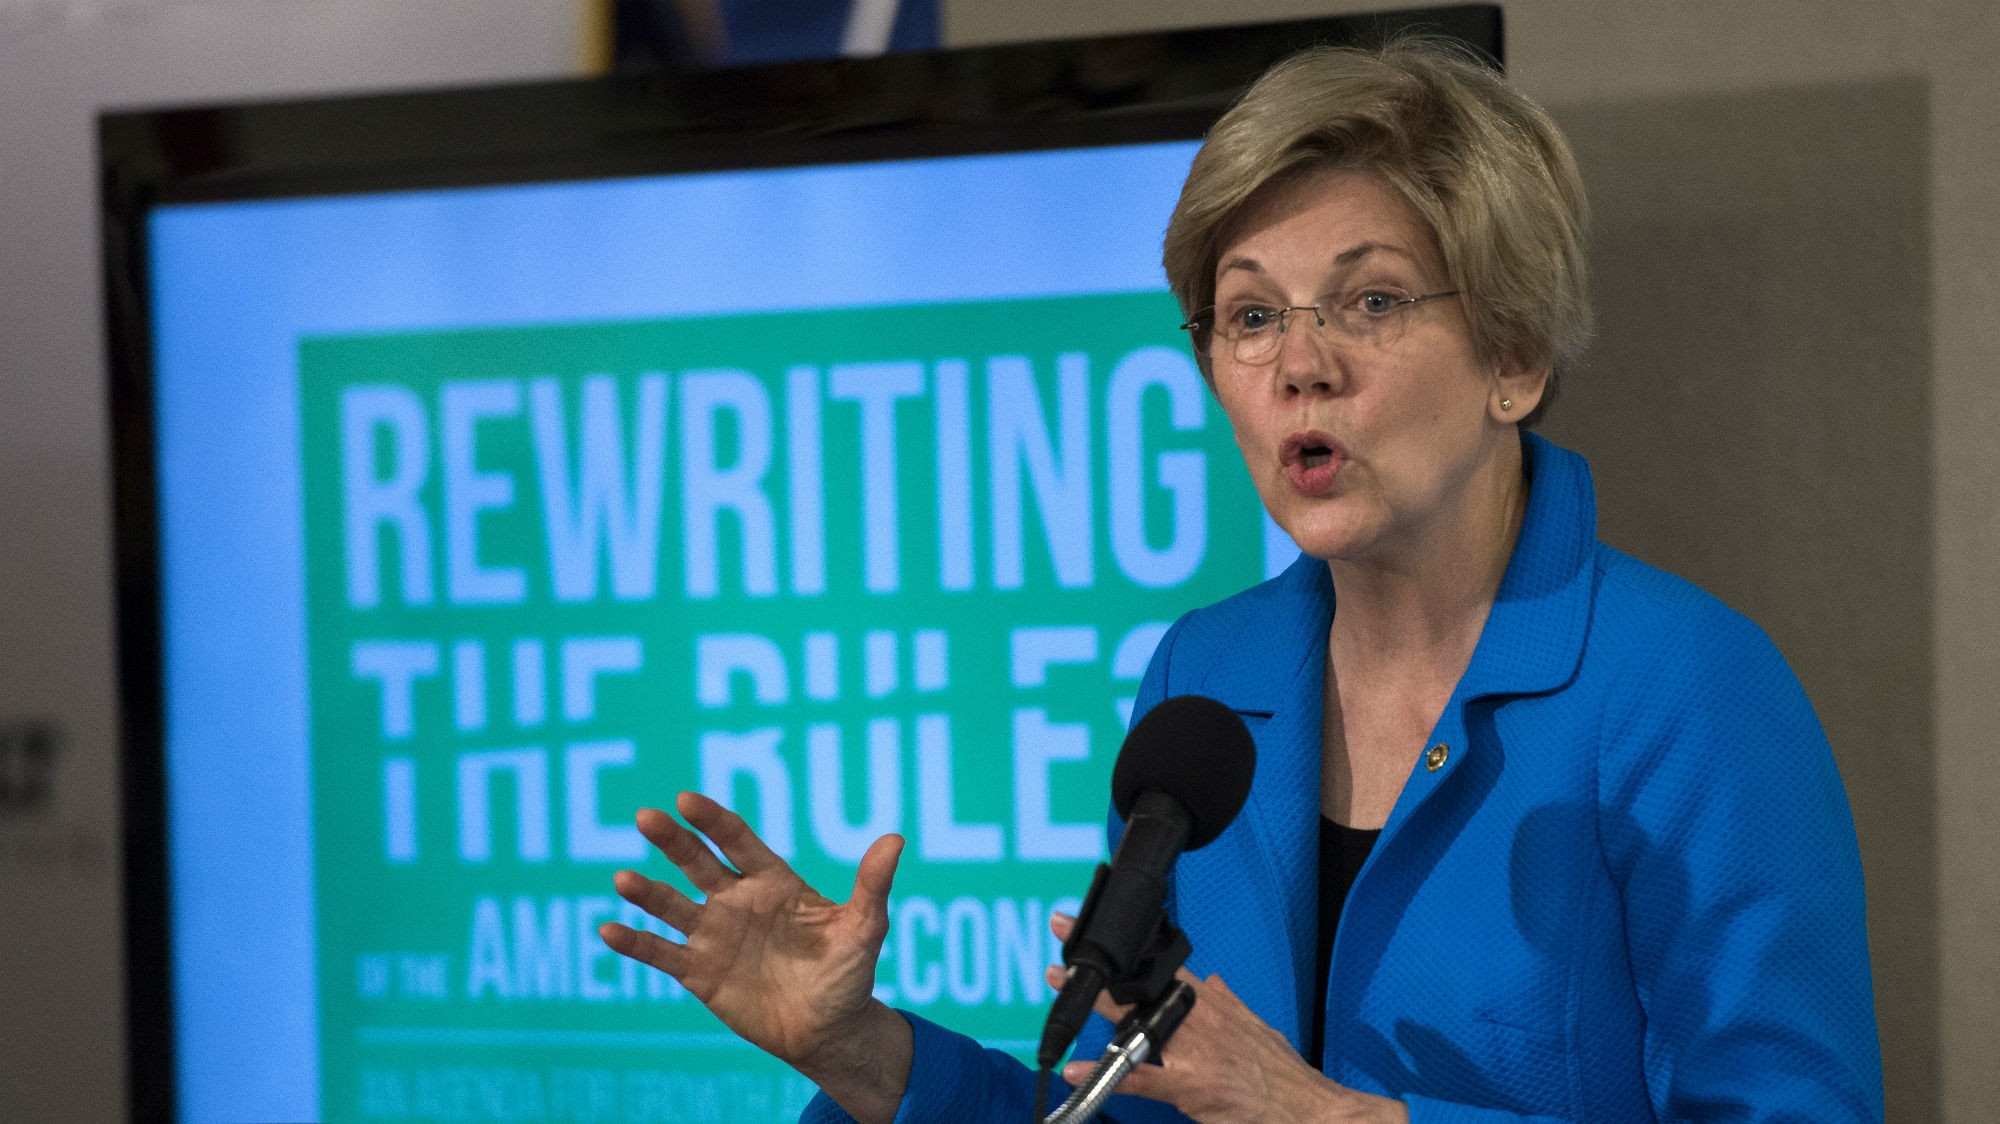 Sanders and Clinton Campaigns Both Name Drop Elizabeth Warren for Veep